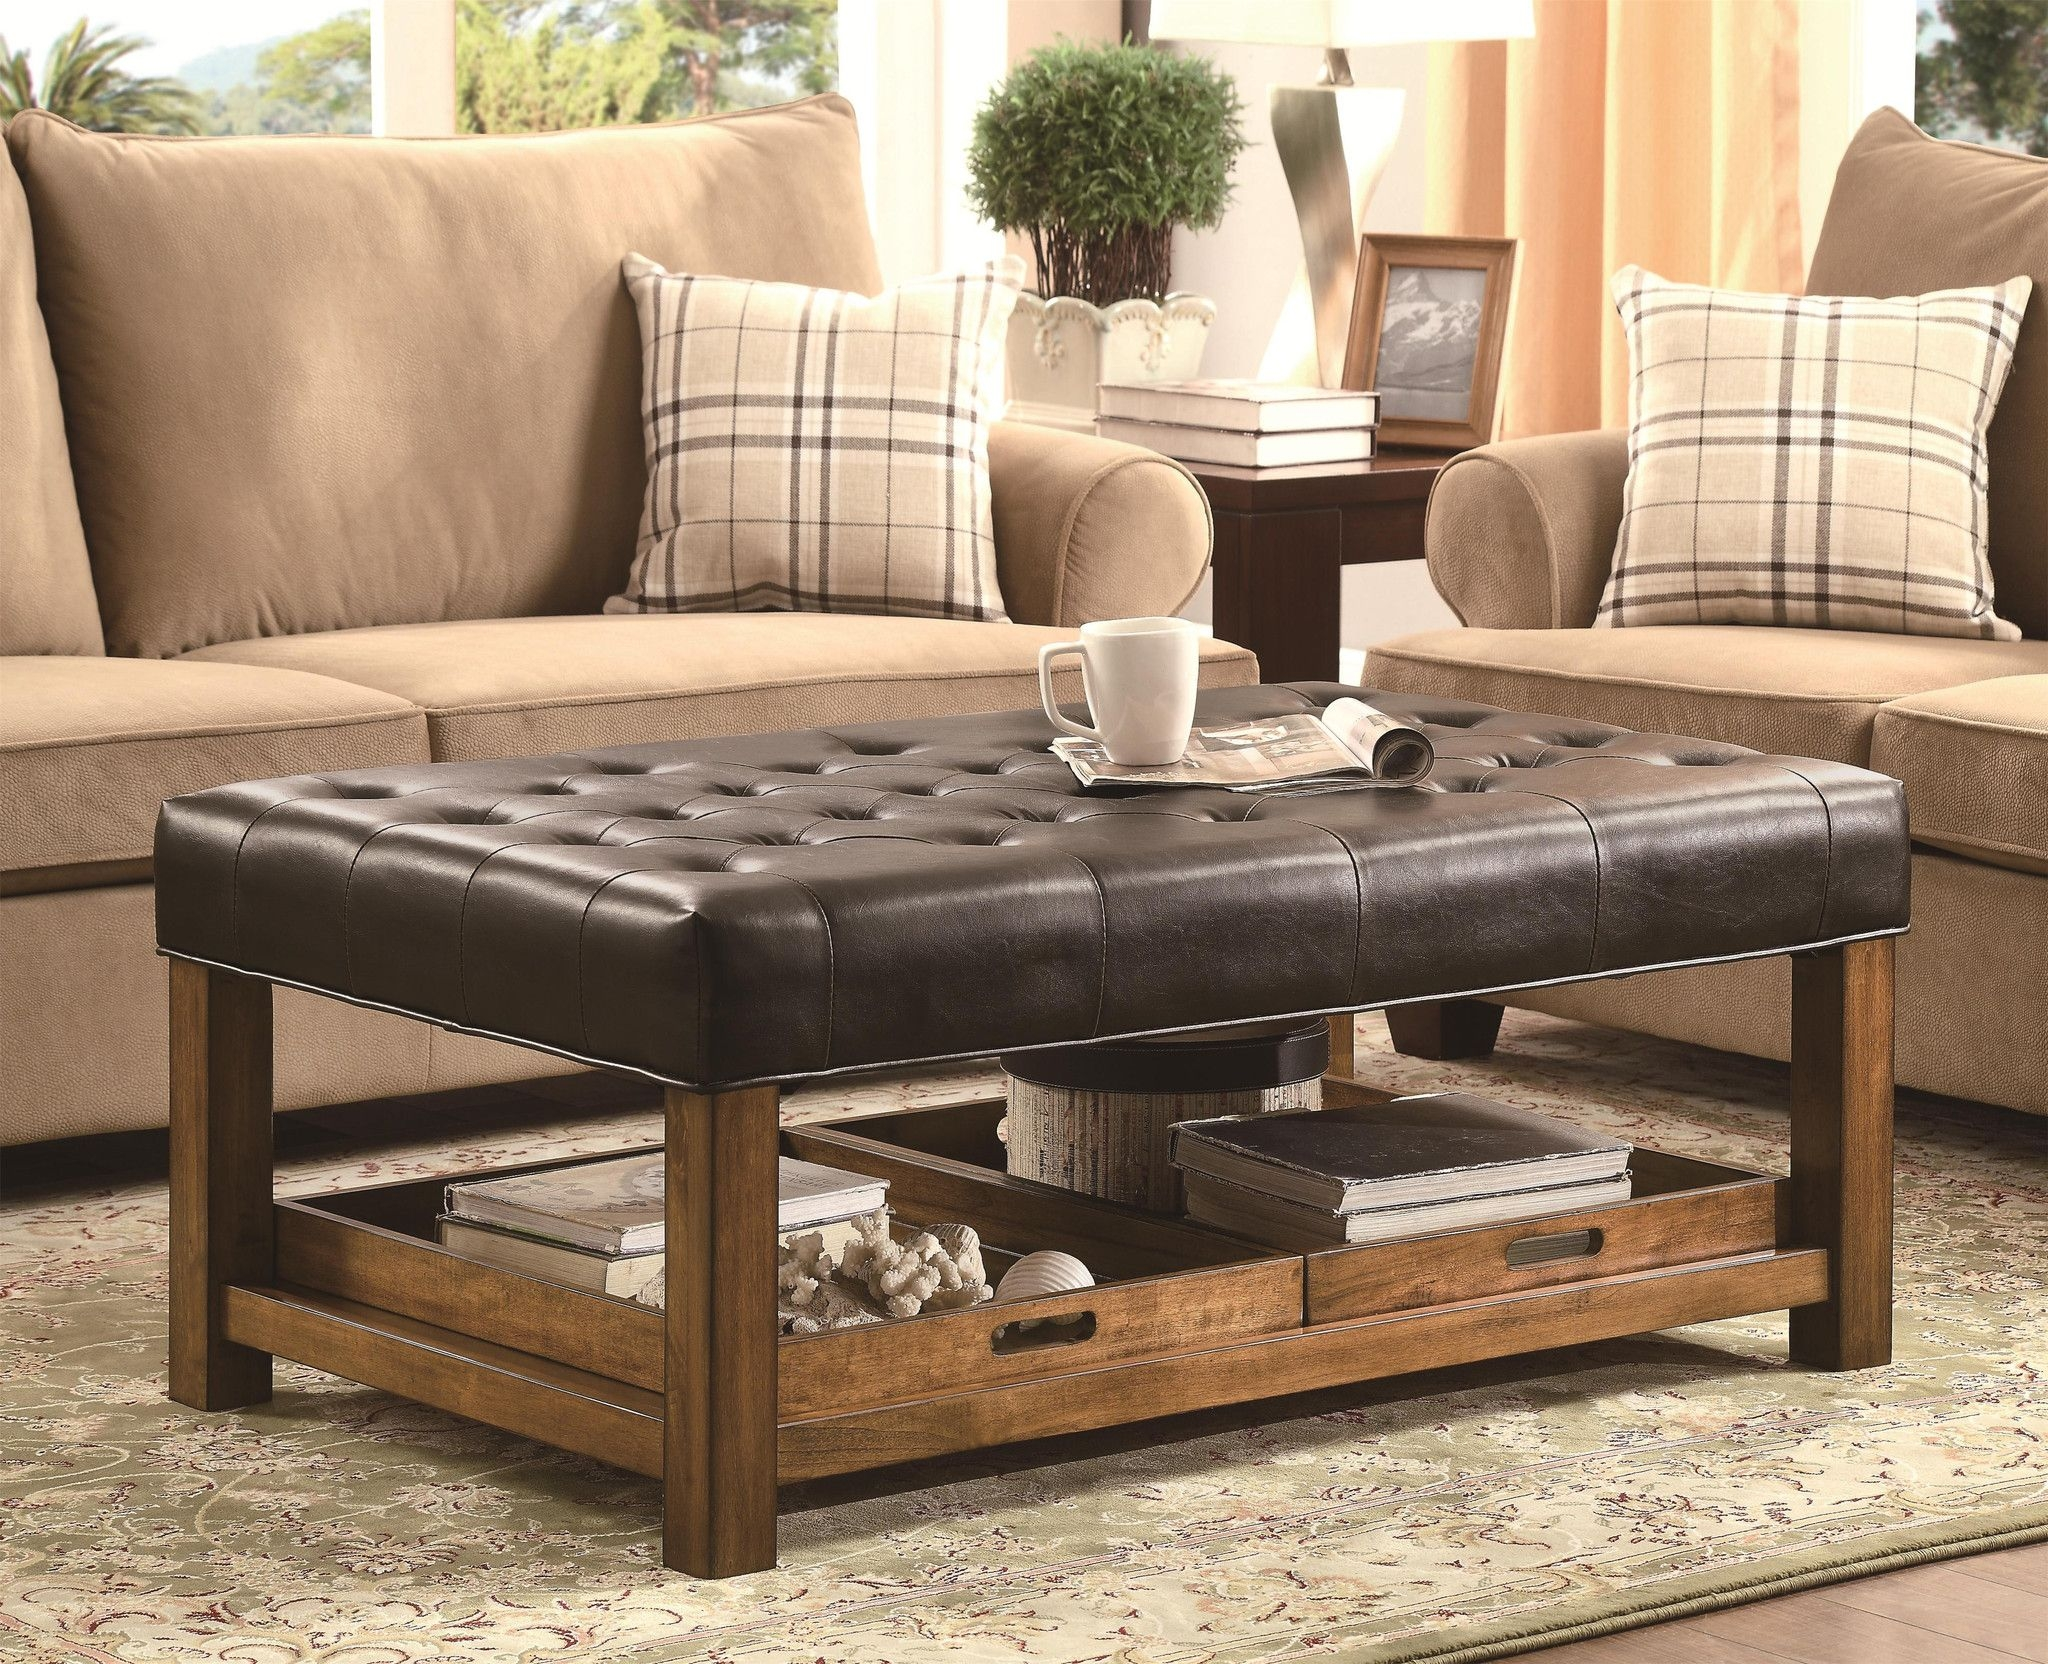 Tufted Leather Cocktail Ottoman Ideas On Foter